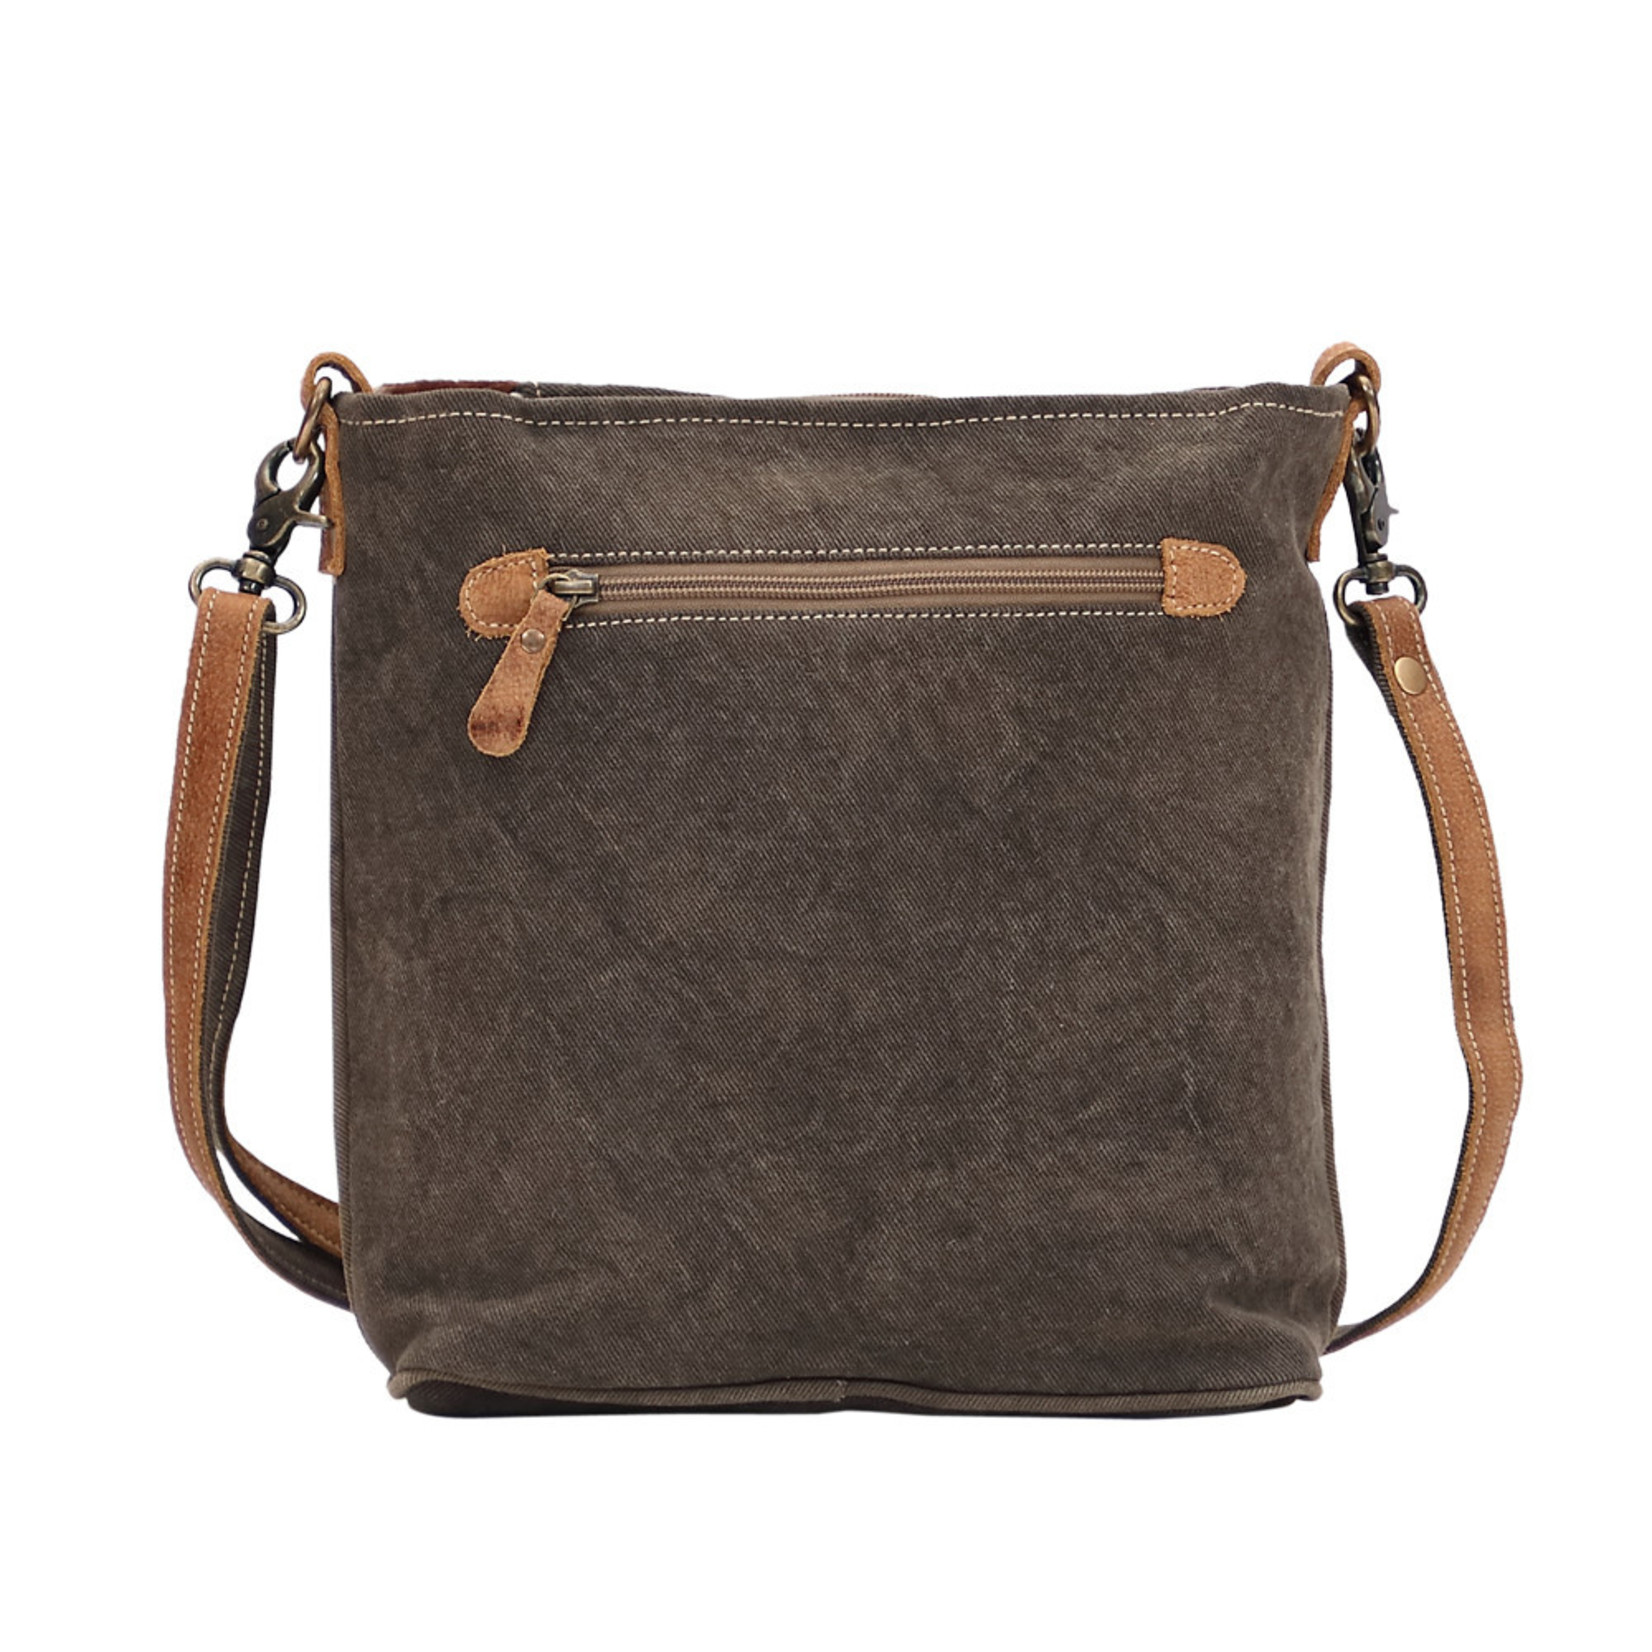 Myra Bags S-1477 Vintage Stamp Shoulder Bag